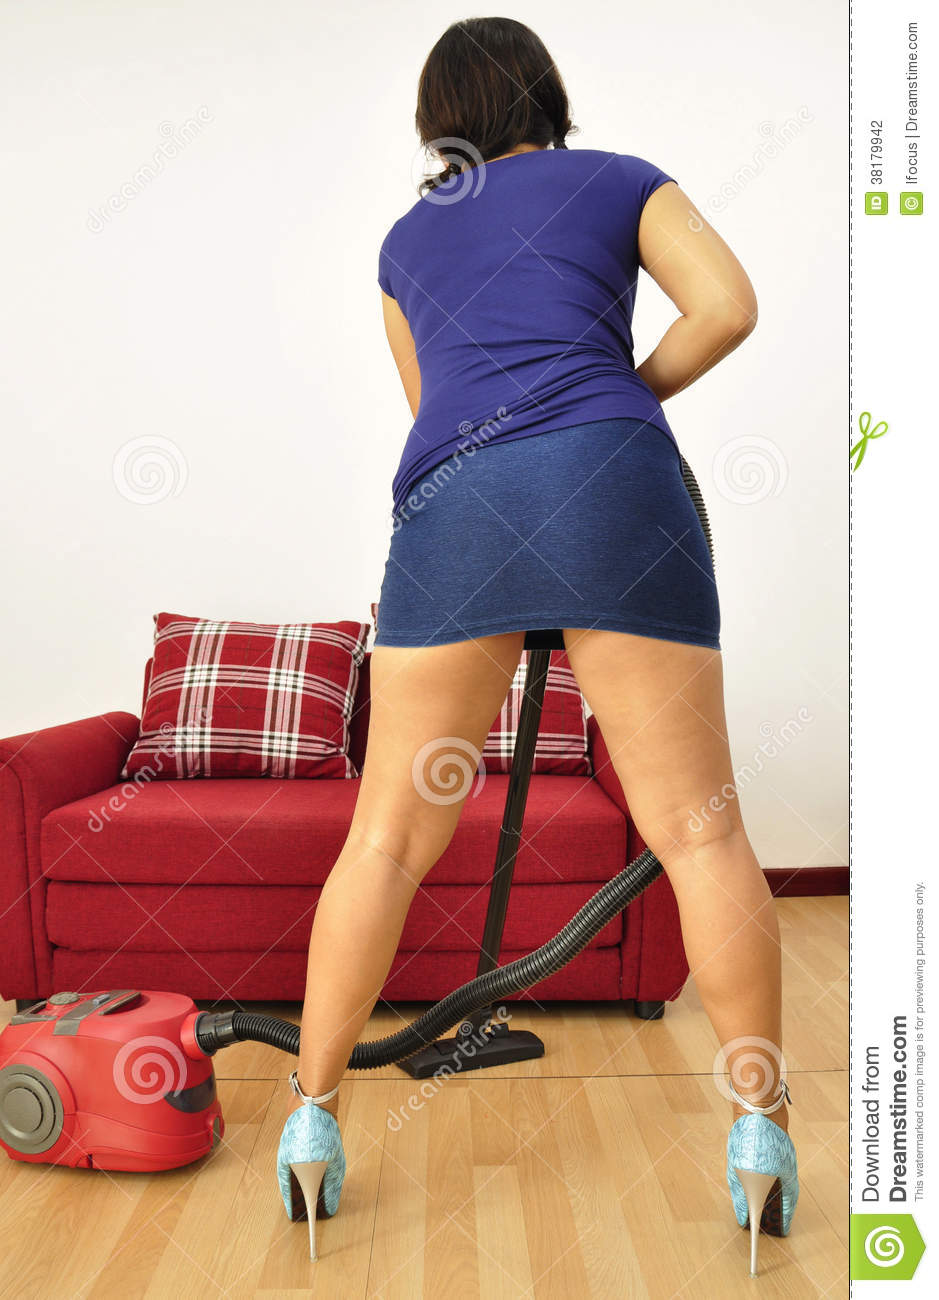 Sexy Asian Woman Short Skirt Vacuums Her Flat Stock Photography - Image: 38179942